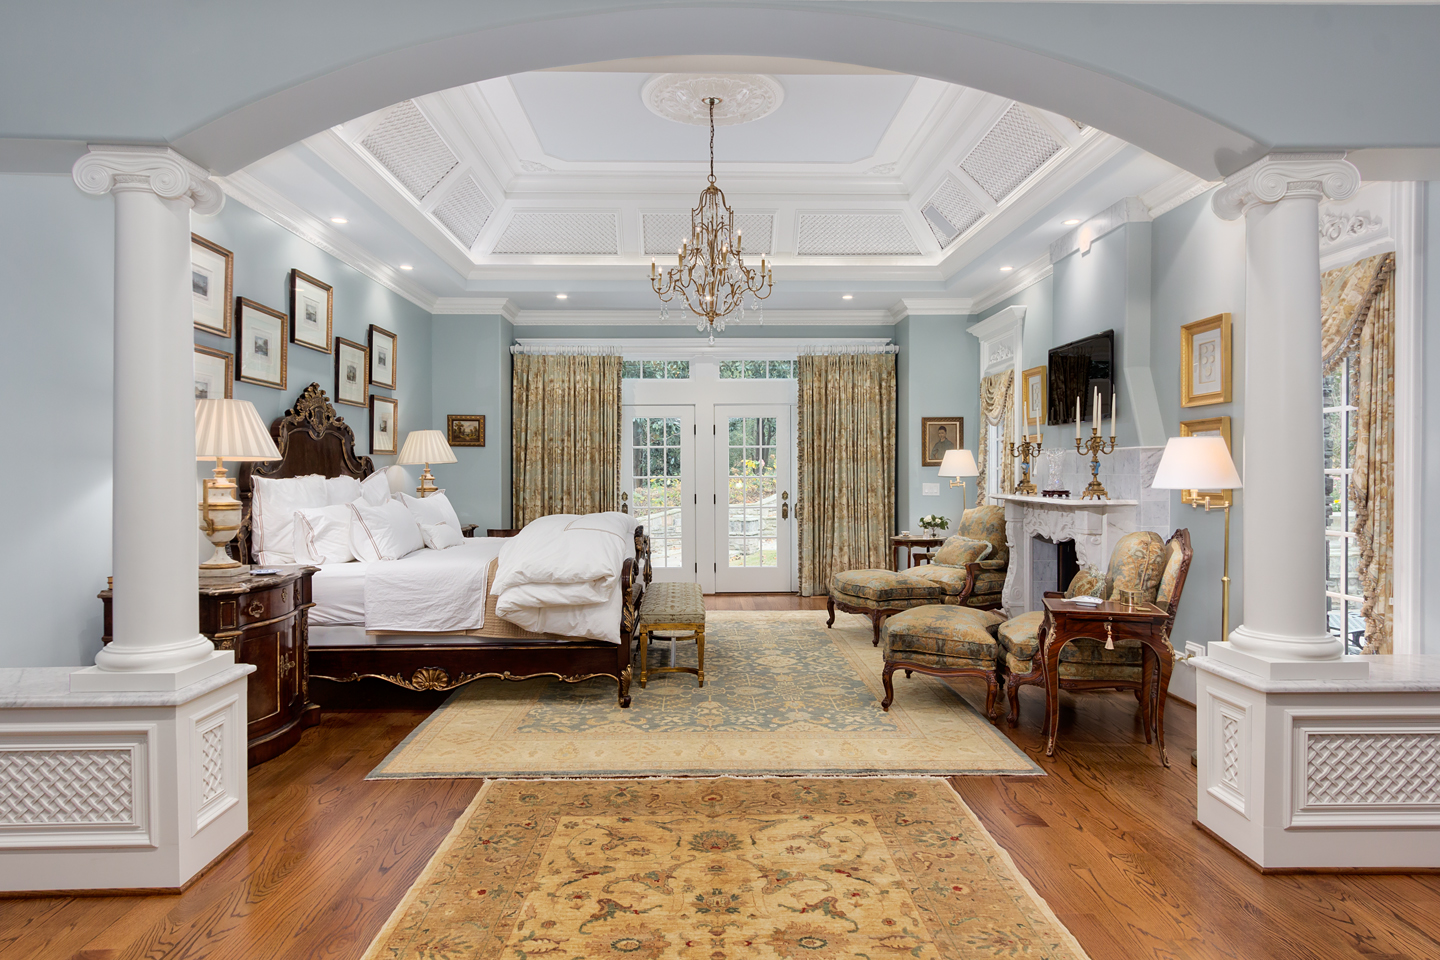 Atlanta Real Estate Photography Interior Example 401